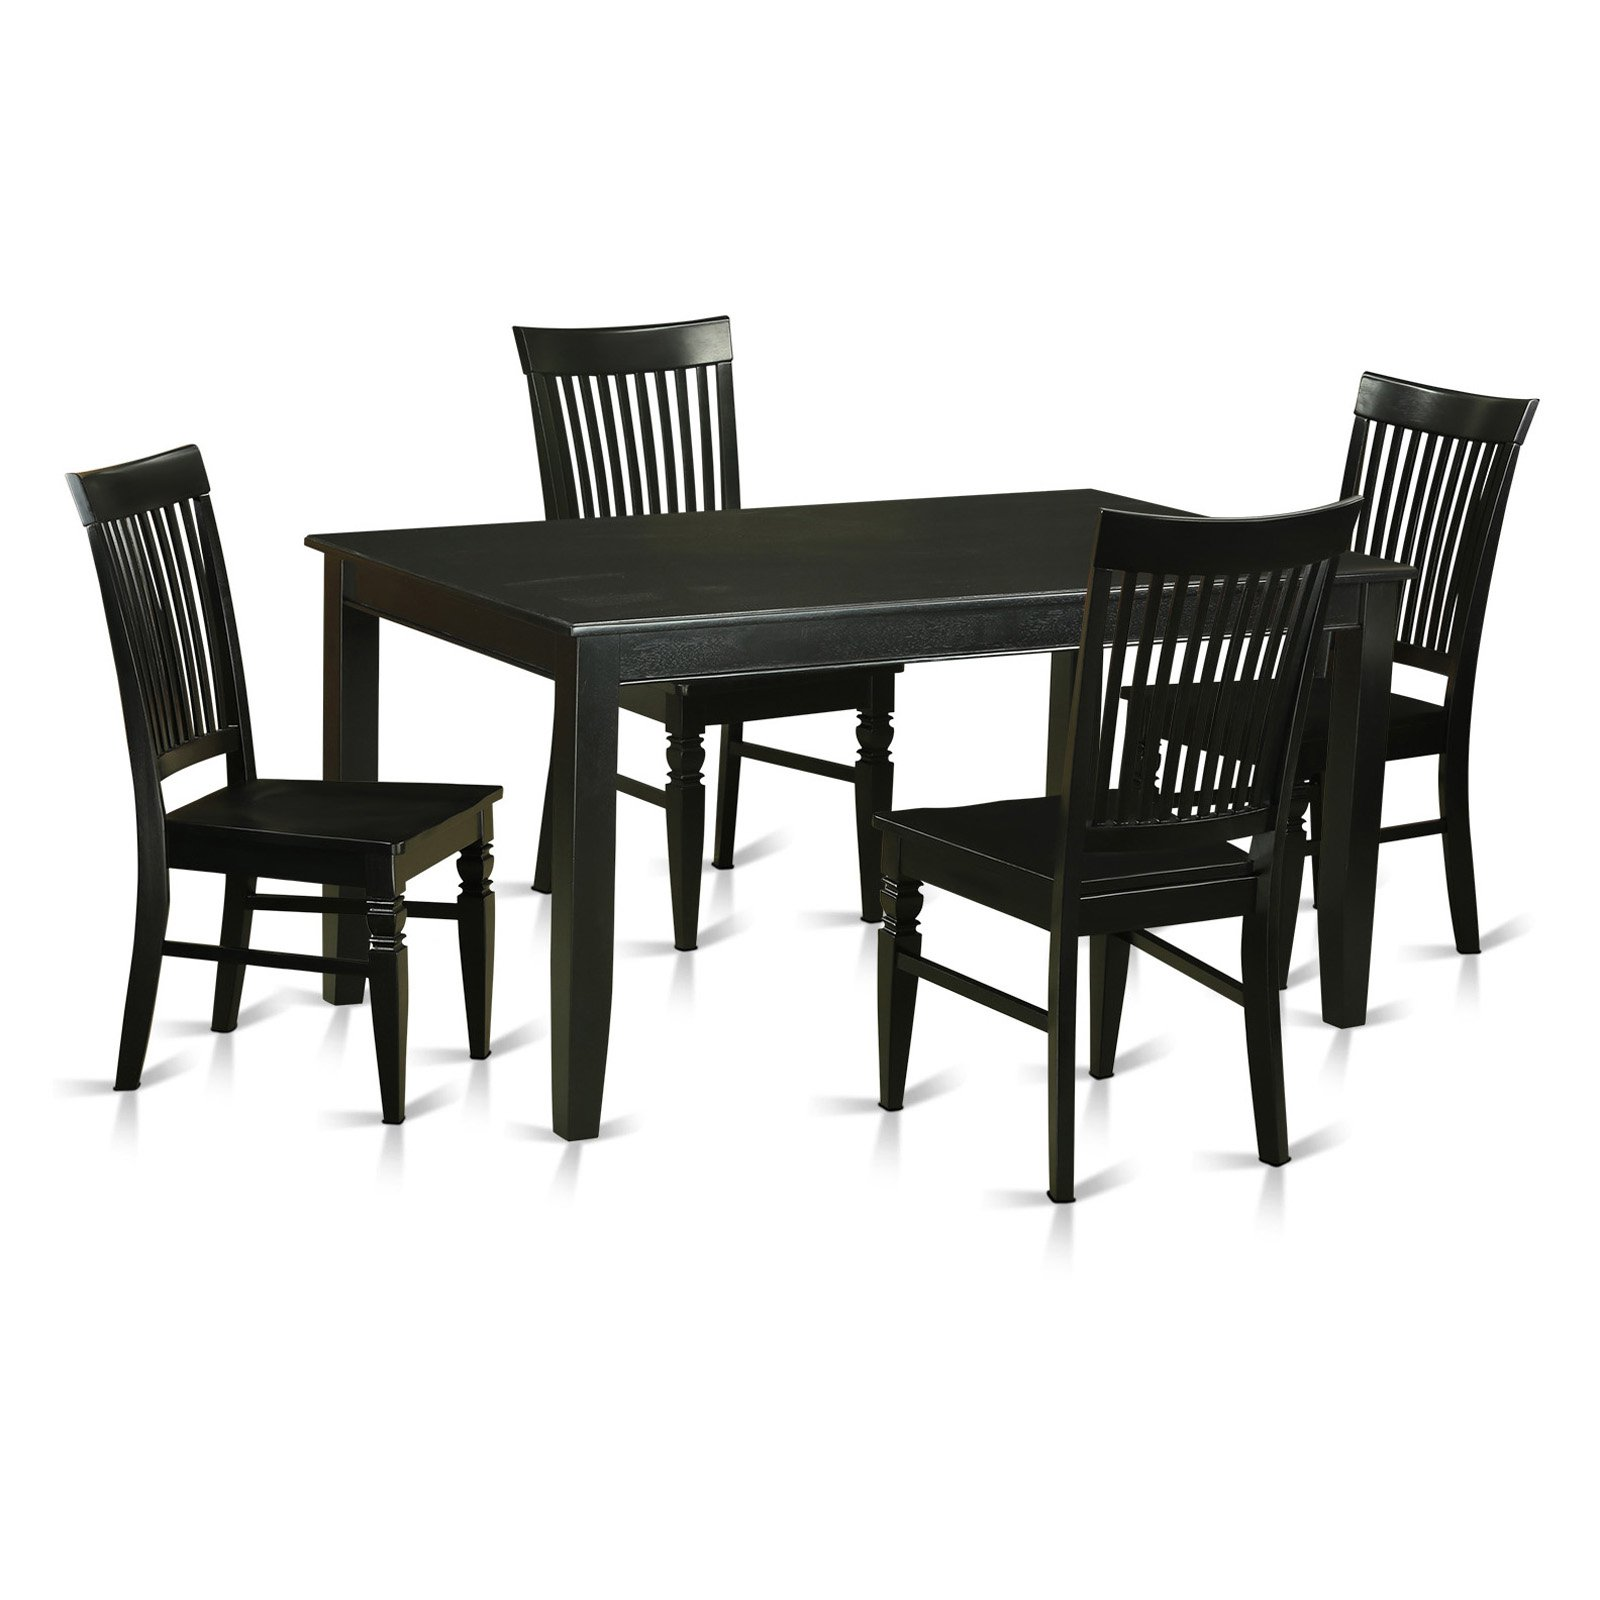 East West Furniture Dudley 5 Piece Rectangular Dining Table Set with Weston Wooden Chairs